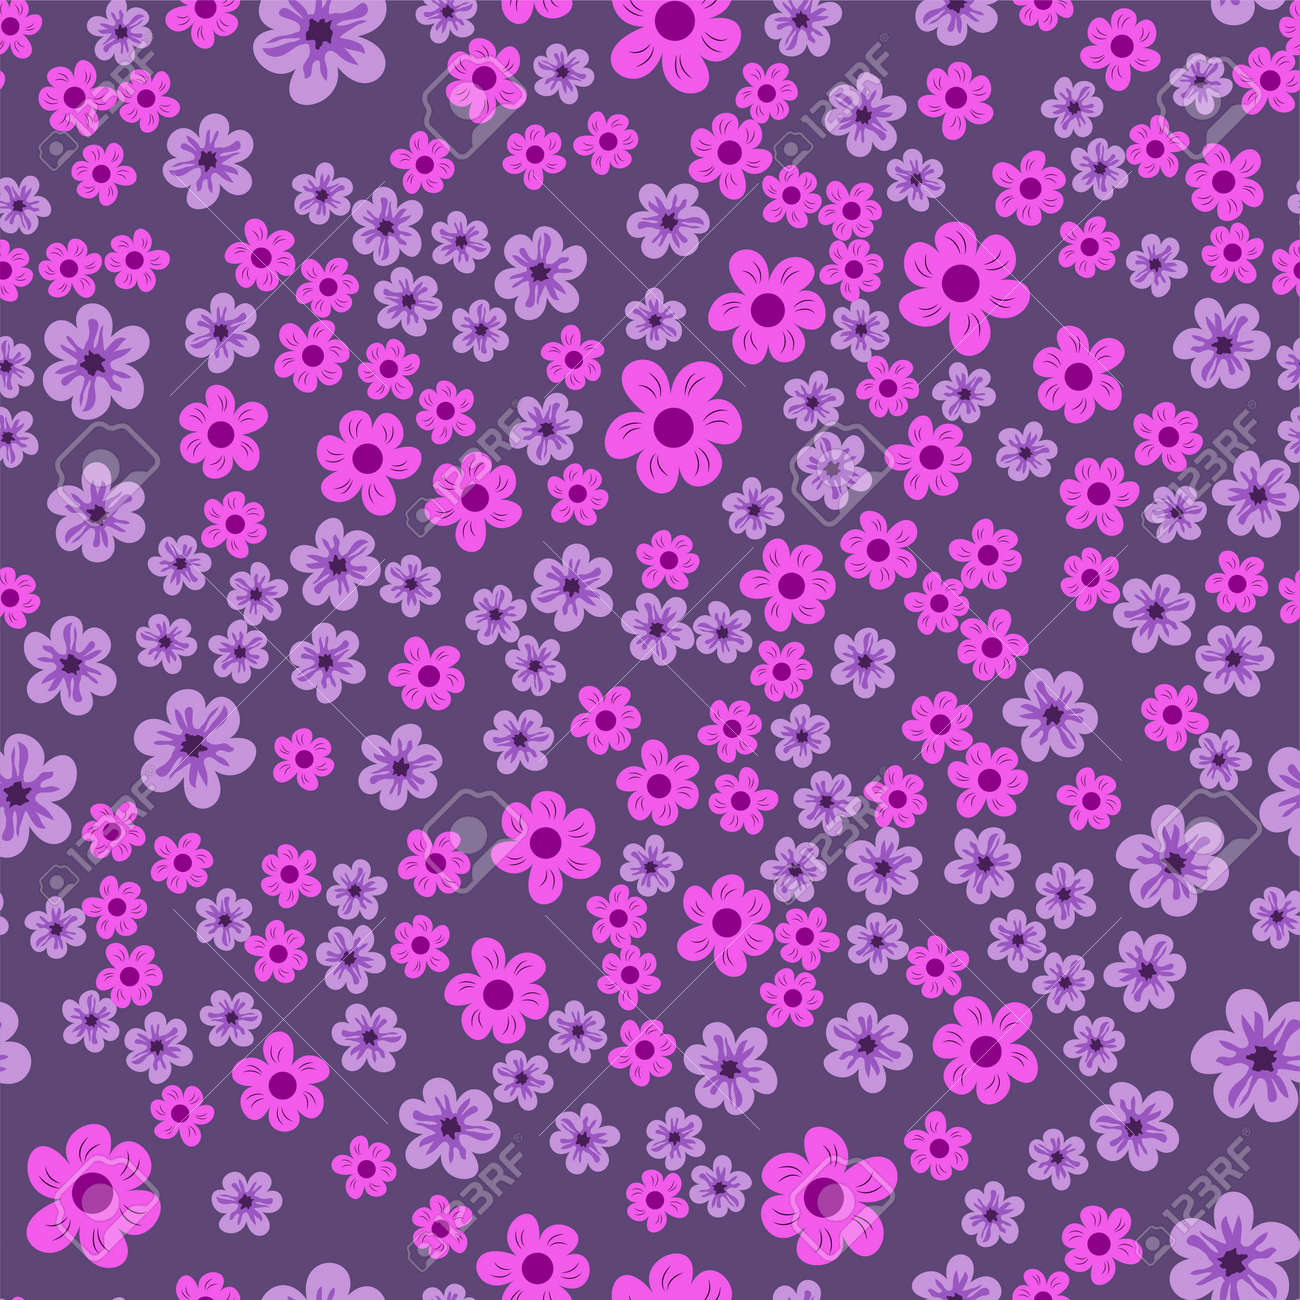 Abstract Seamless Pattern Of Flowers On A Purple Background